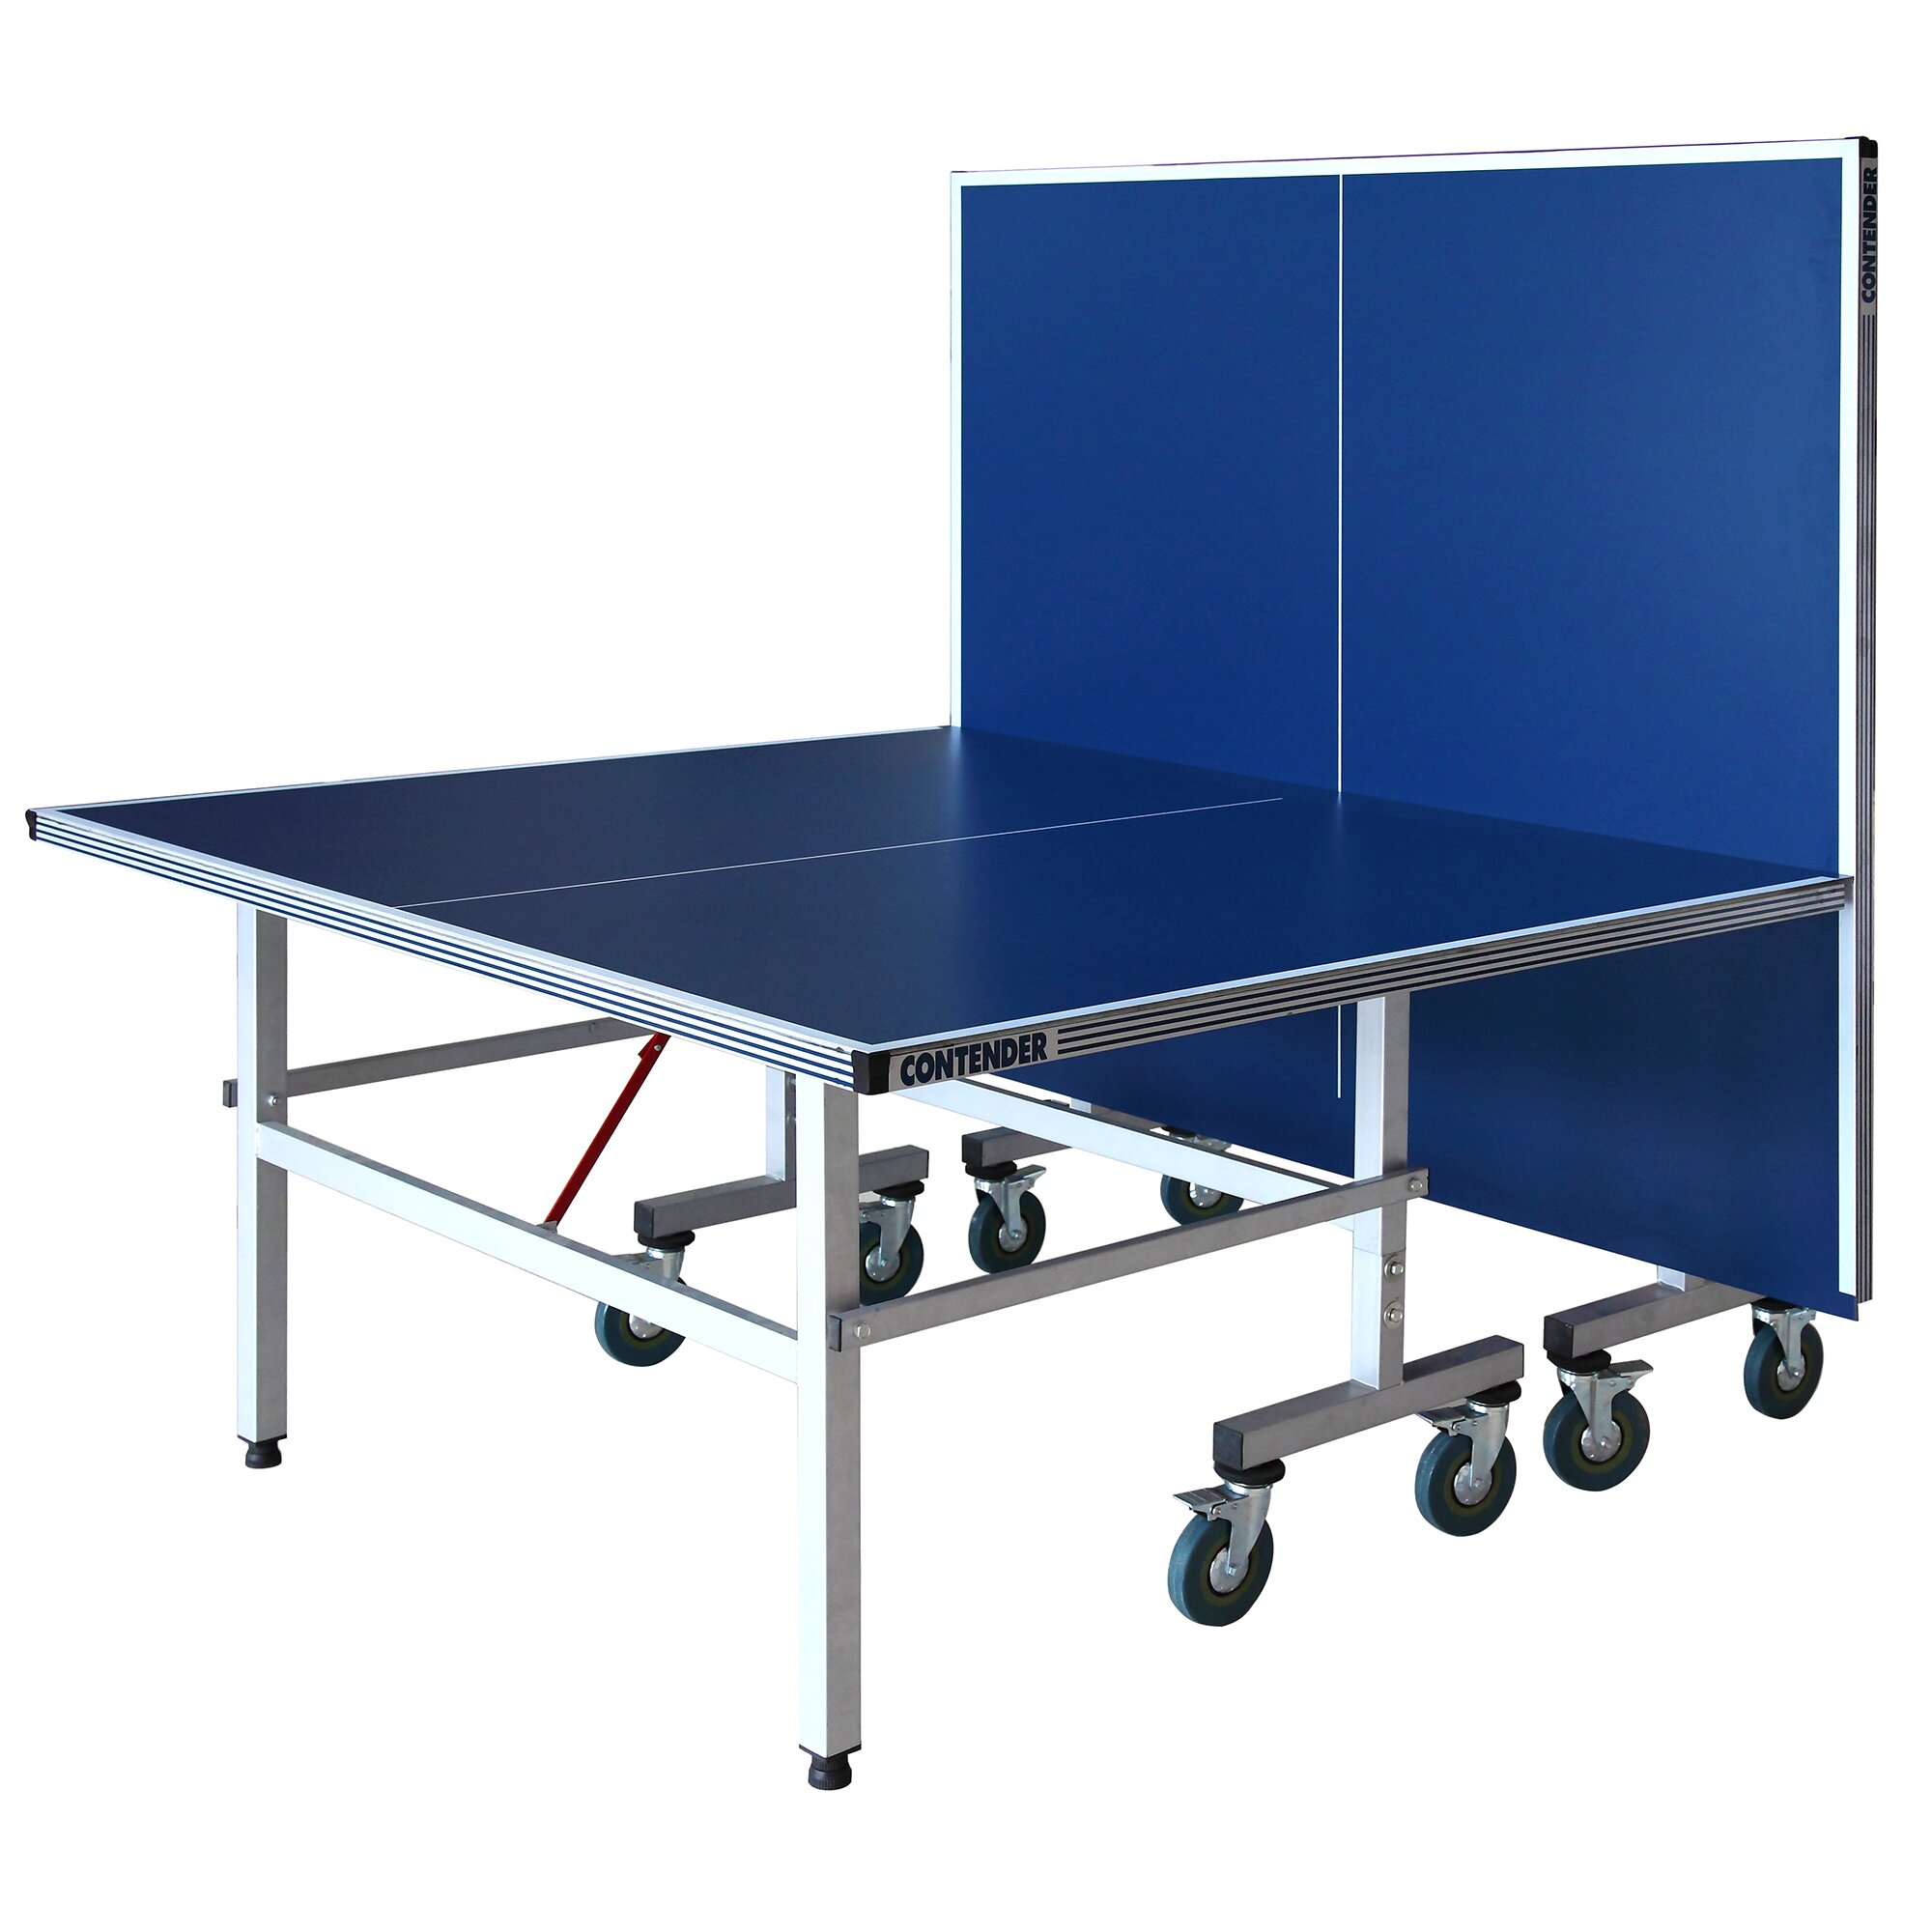 Hathaway games contender outdoor table tennis table reviews - Outdoor table tennis table reviews ...